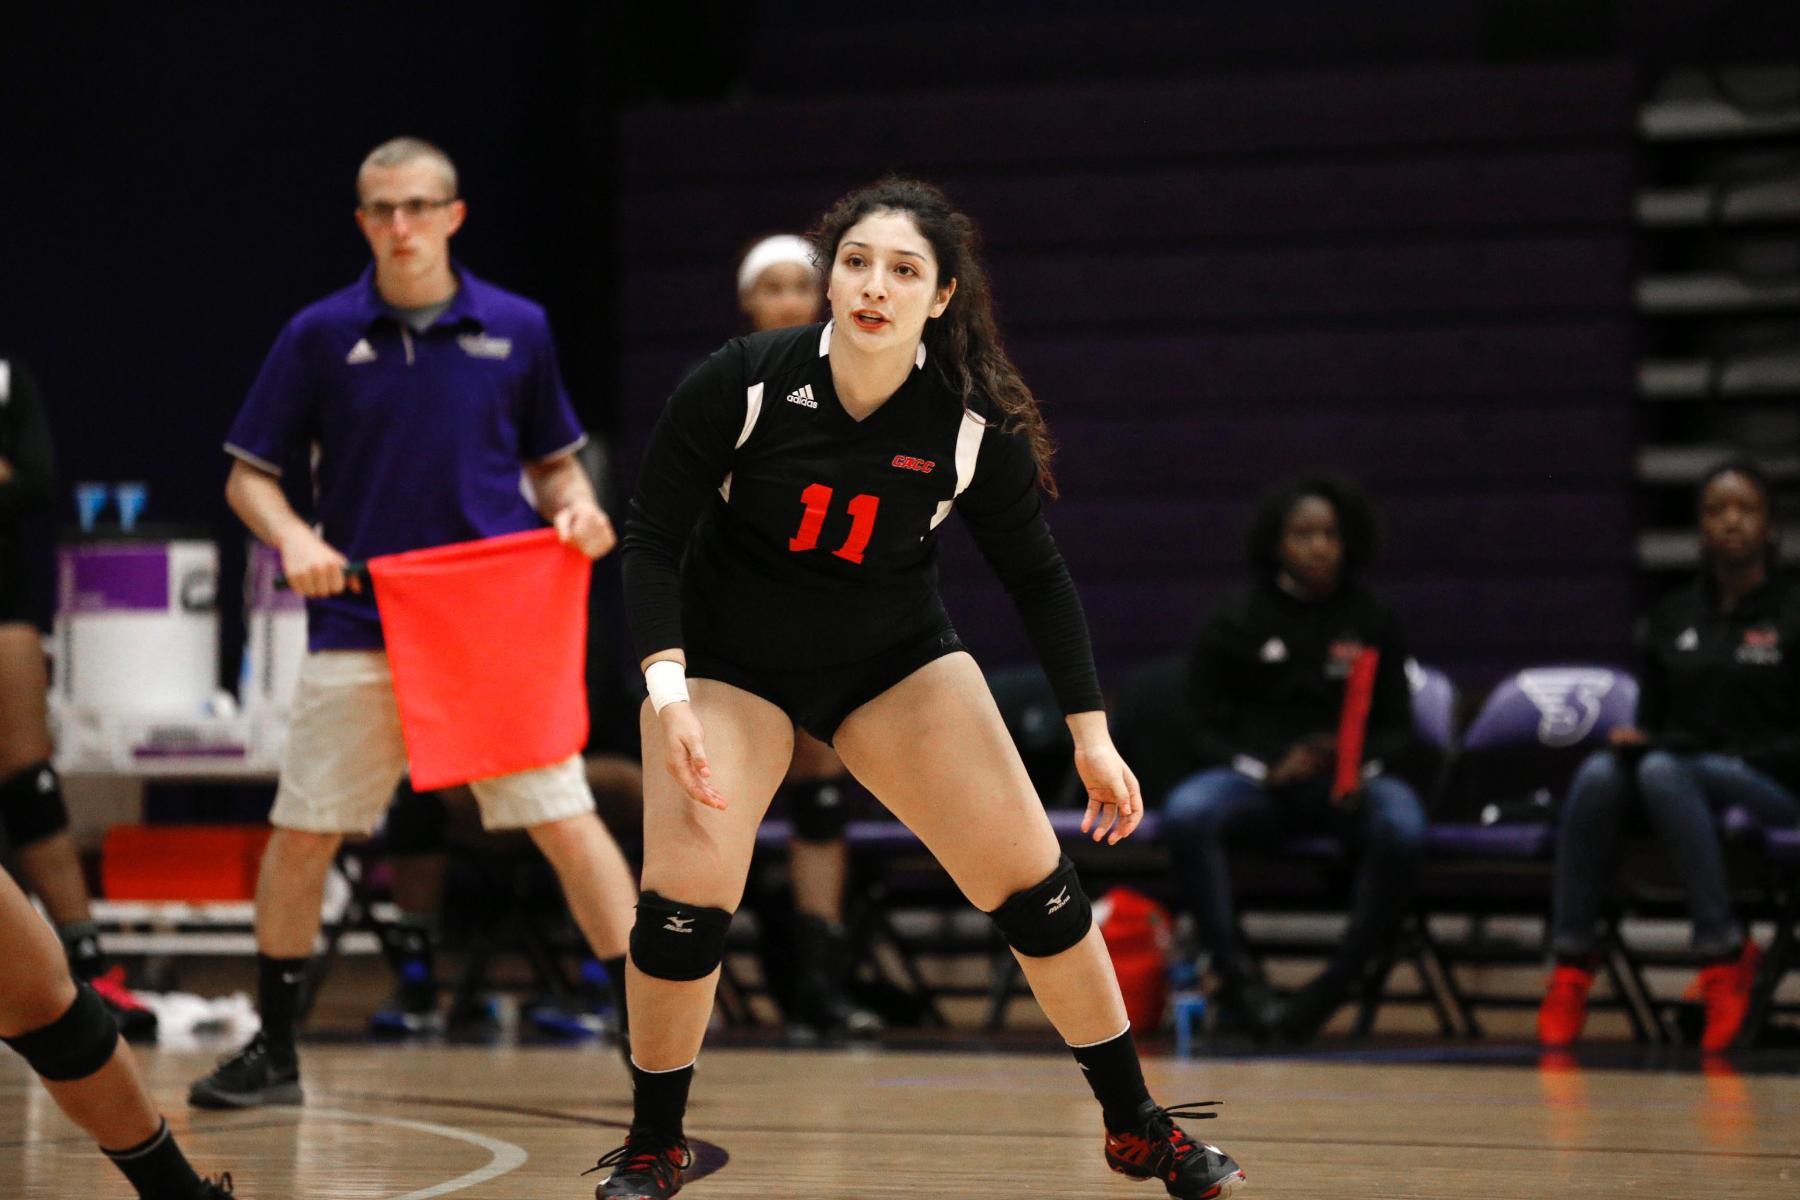 WOMEN'S VOLLEYBALL OPEN 2017 WITH LOSS TO OWLS